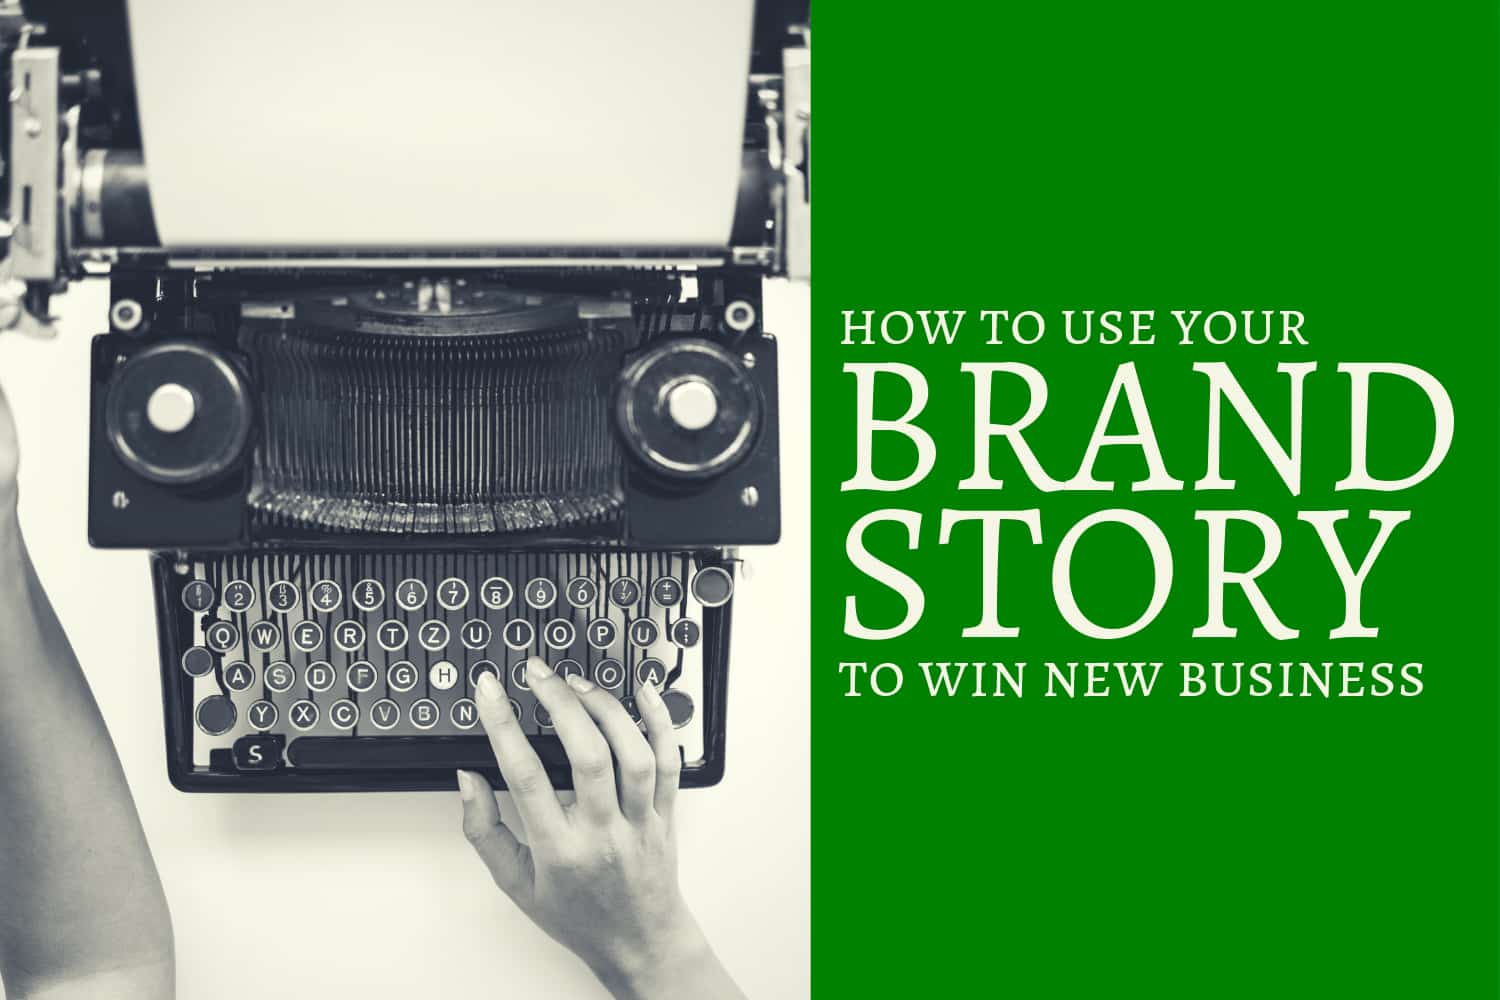 How to Use Your Brand Story to Win New Business